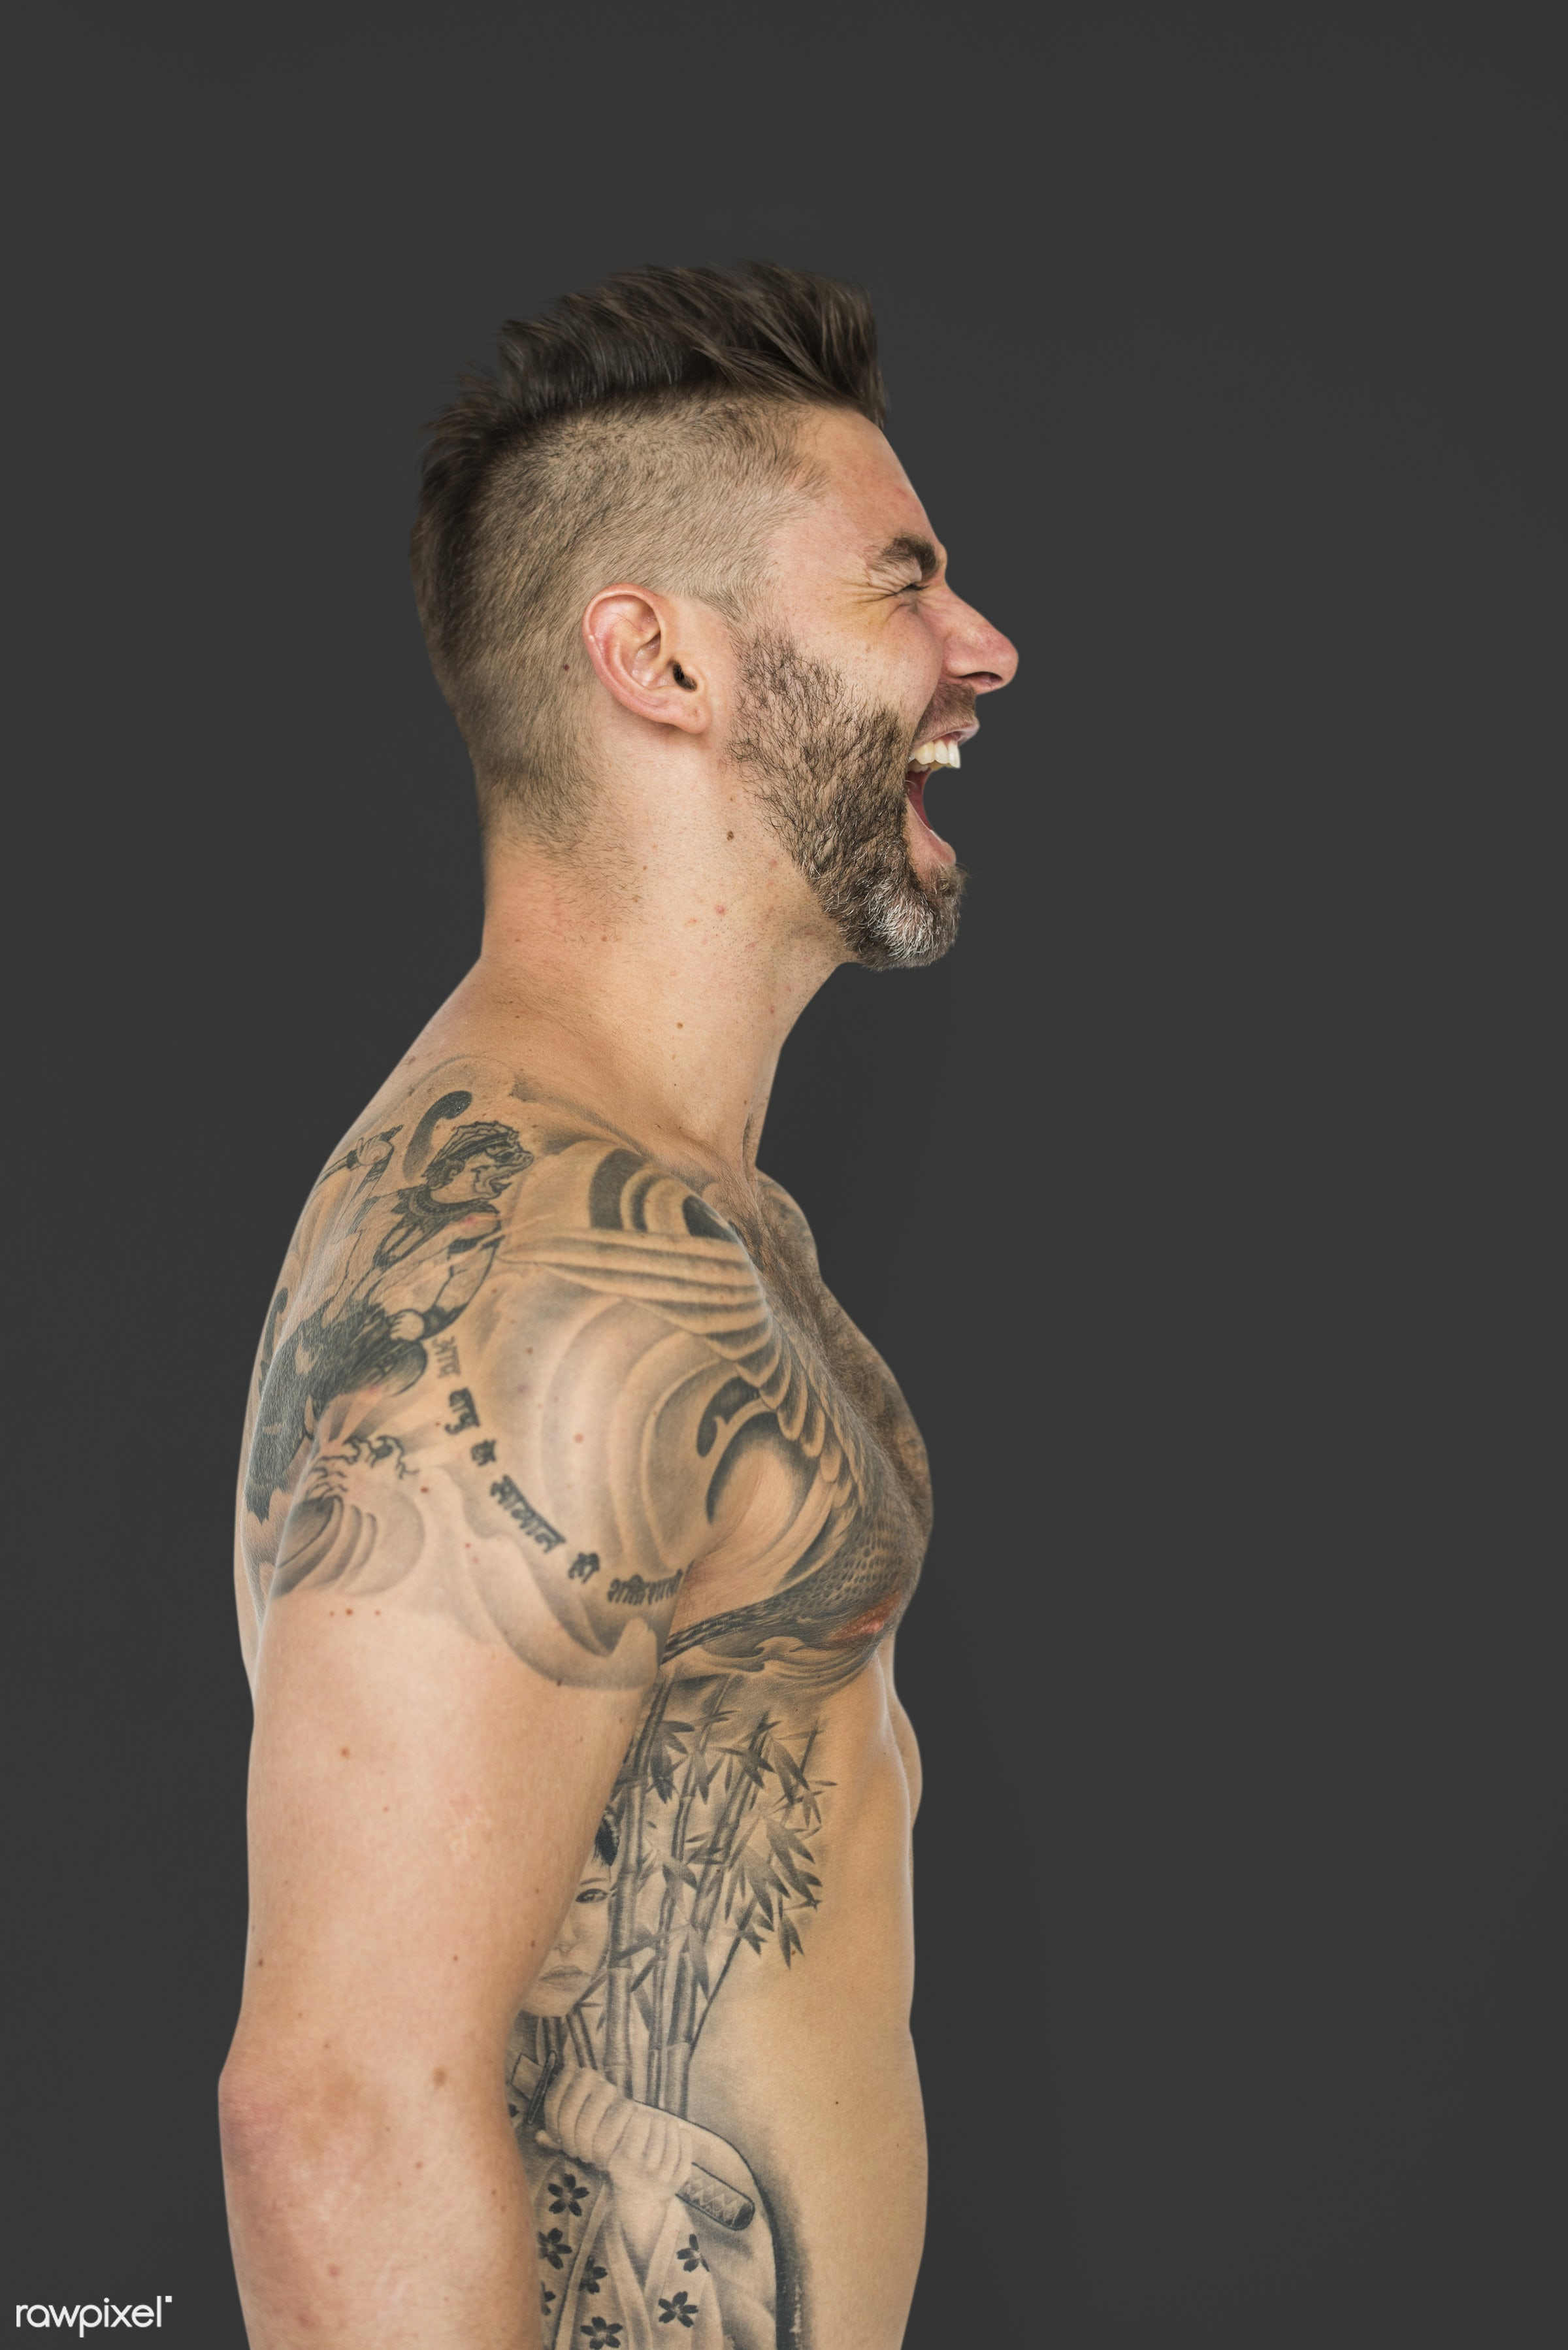 studio, expression, body, tattooed, person, single, hate, rage, people, caucasian, solo, lifestyle, power, tattoo, serious,...